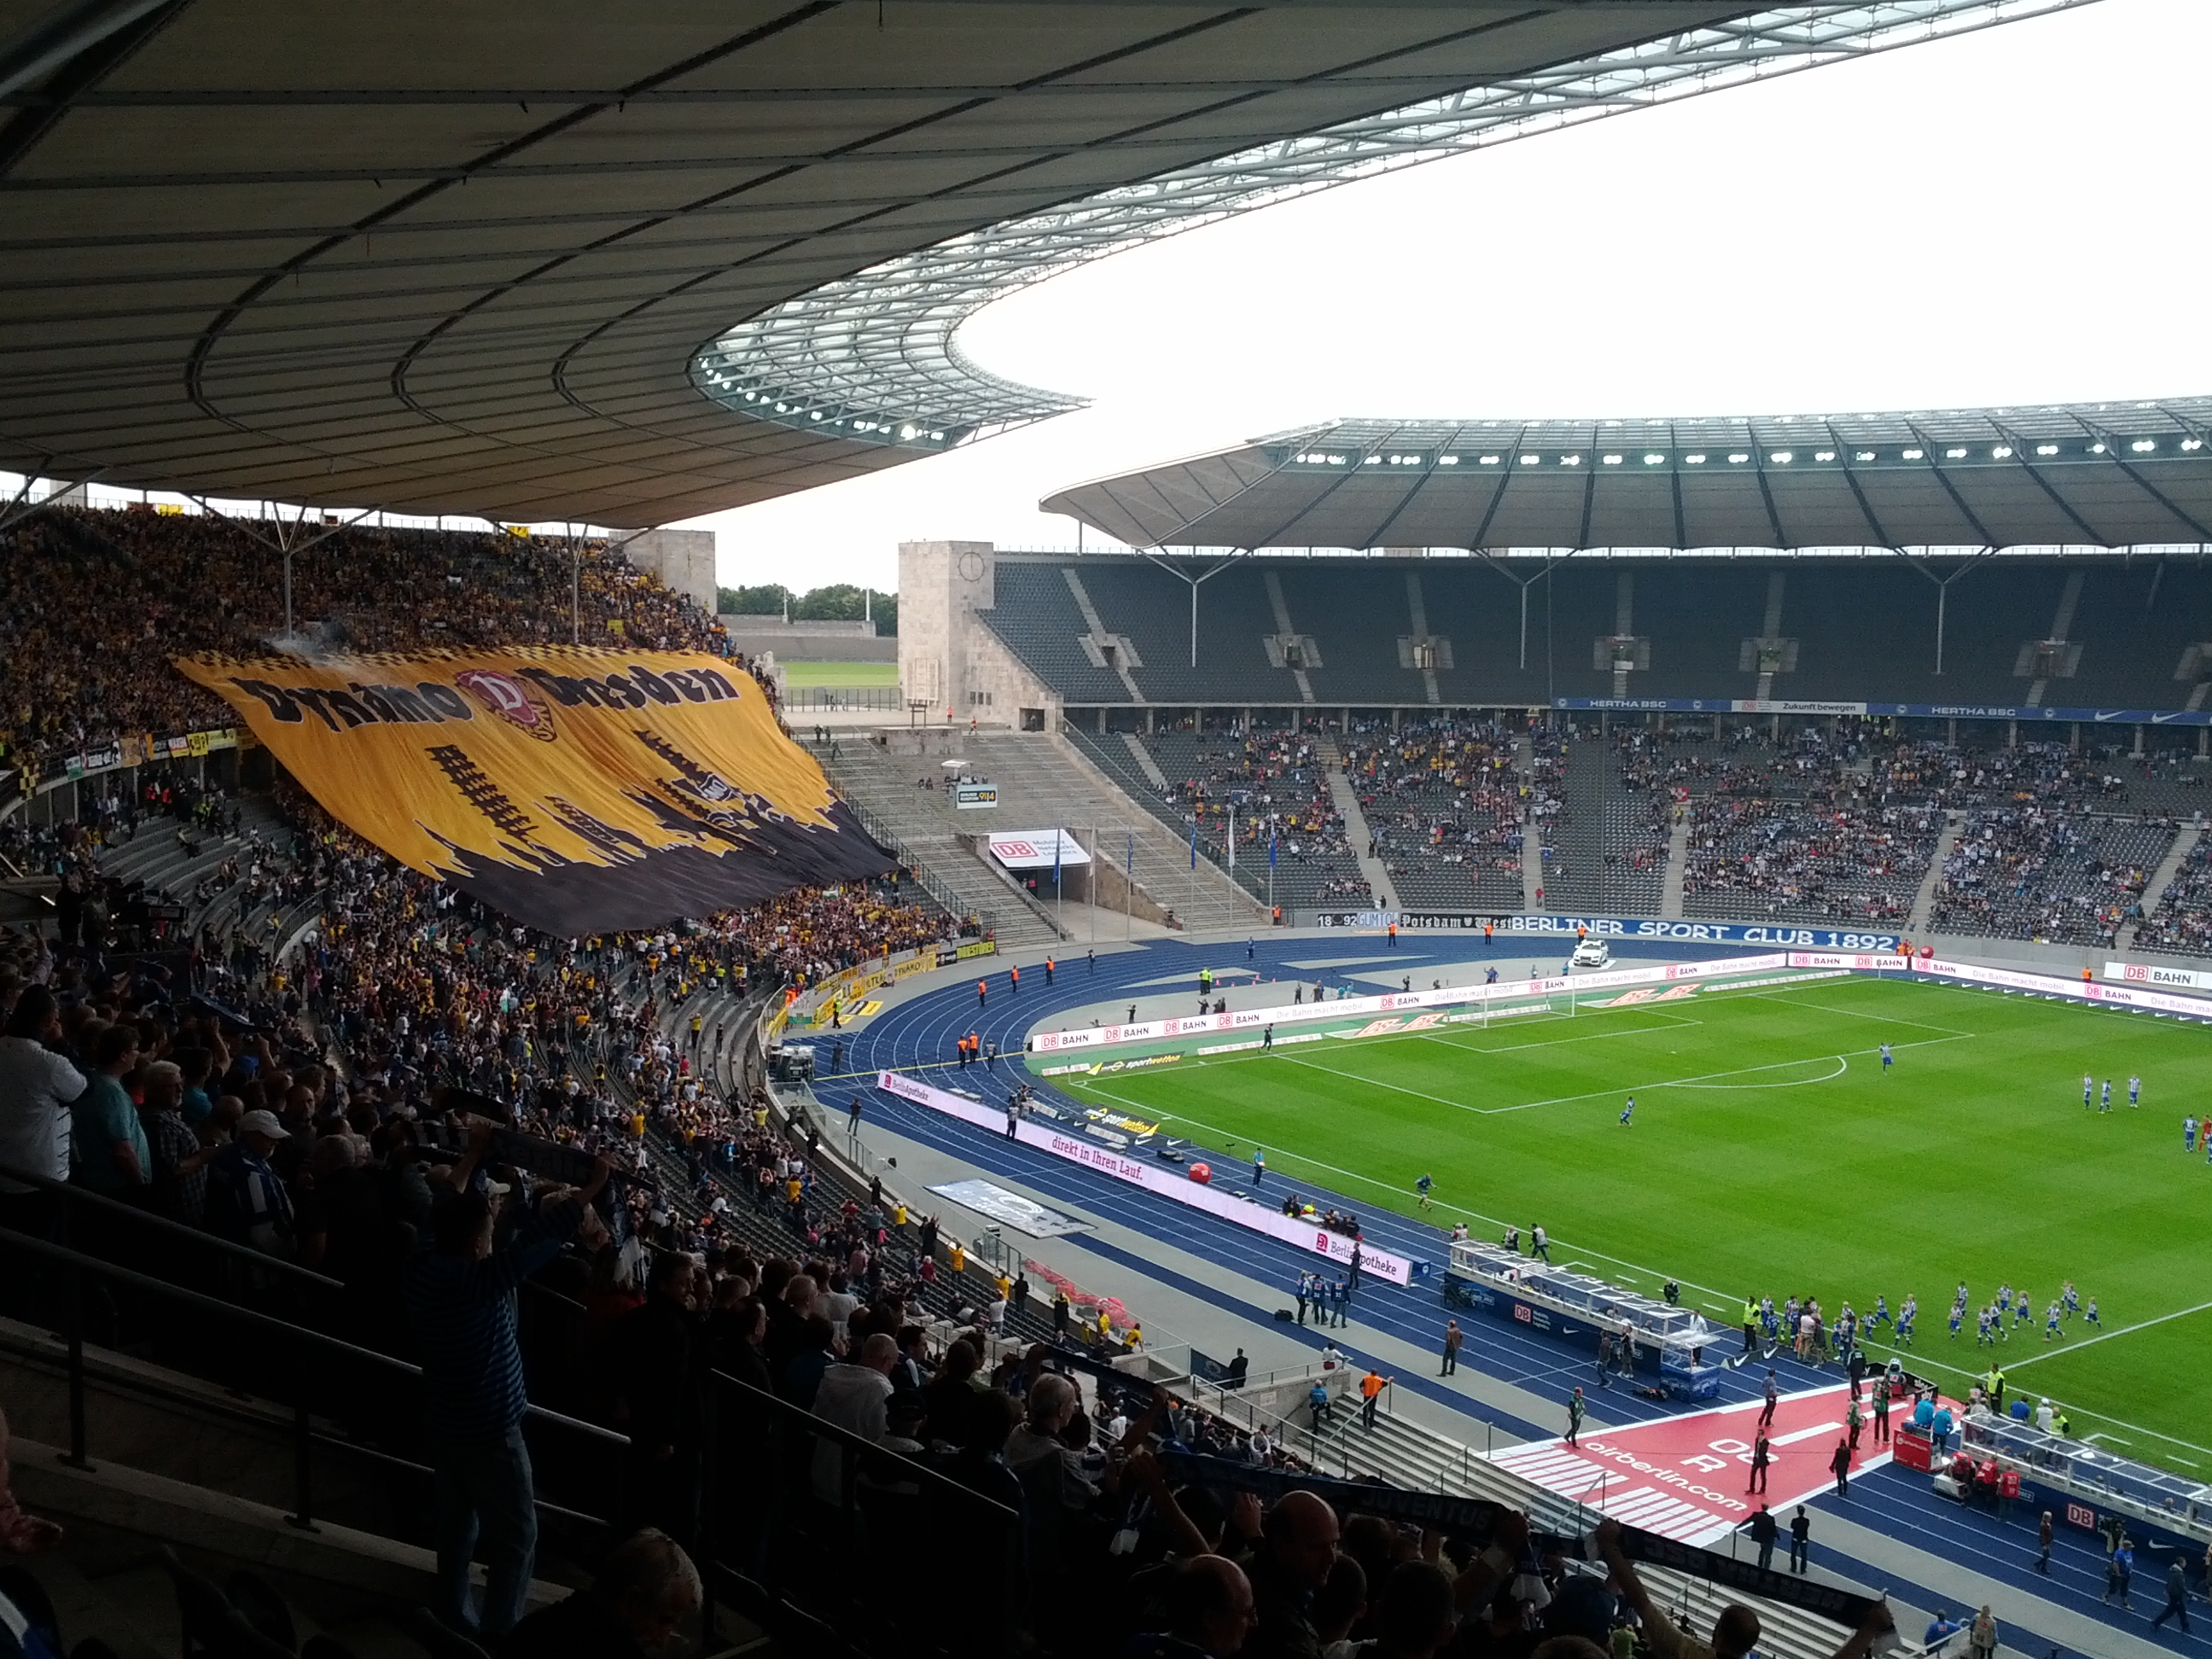 Description Dynamo Dresden Olympiastadionberlin.jpg